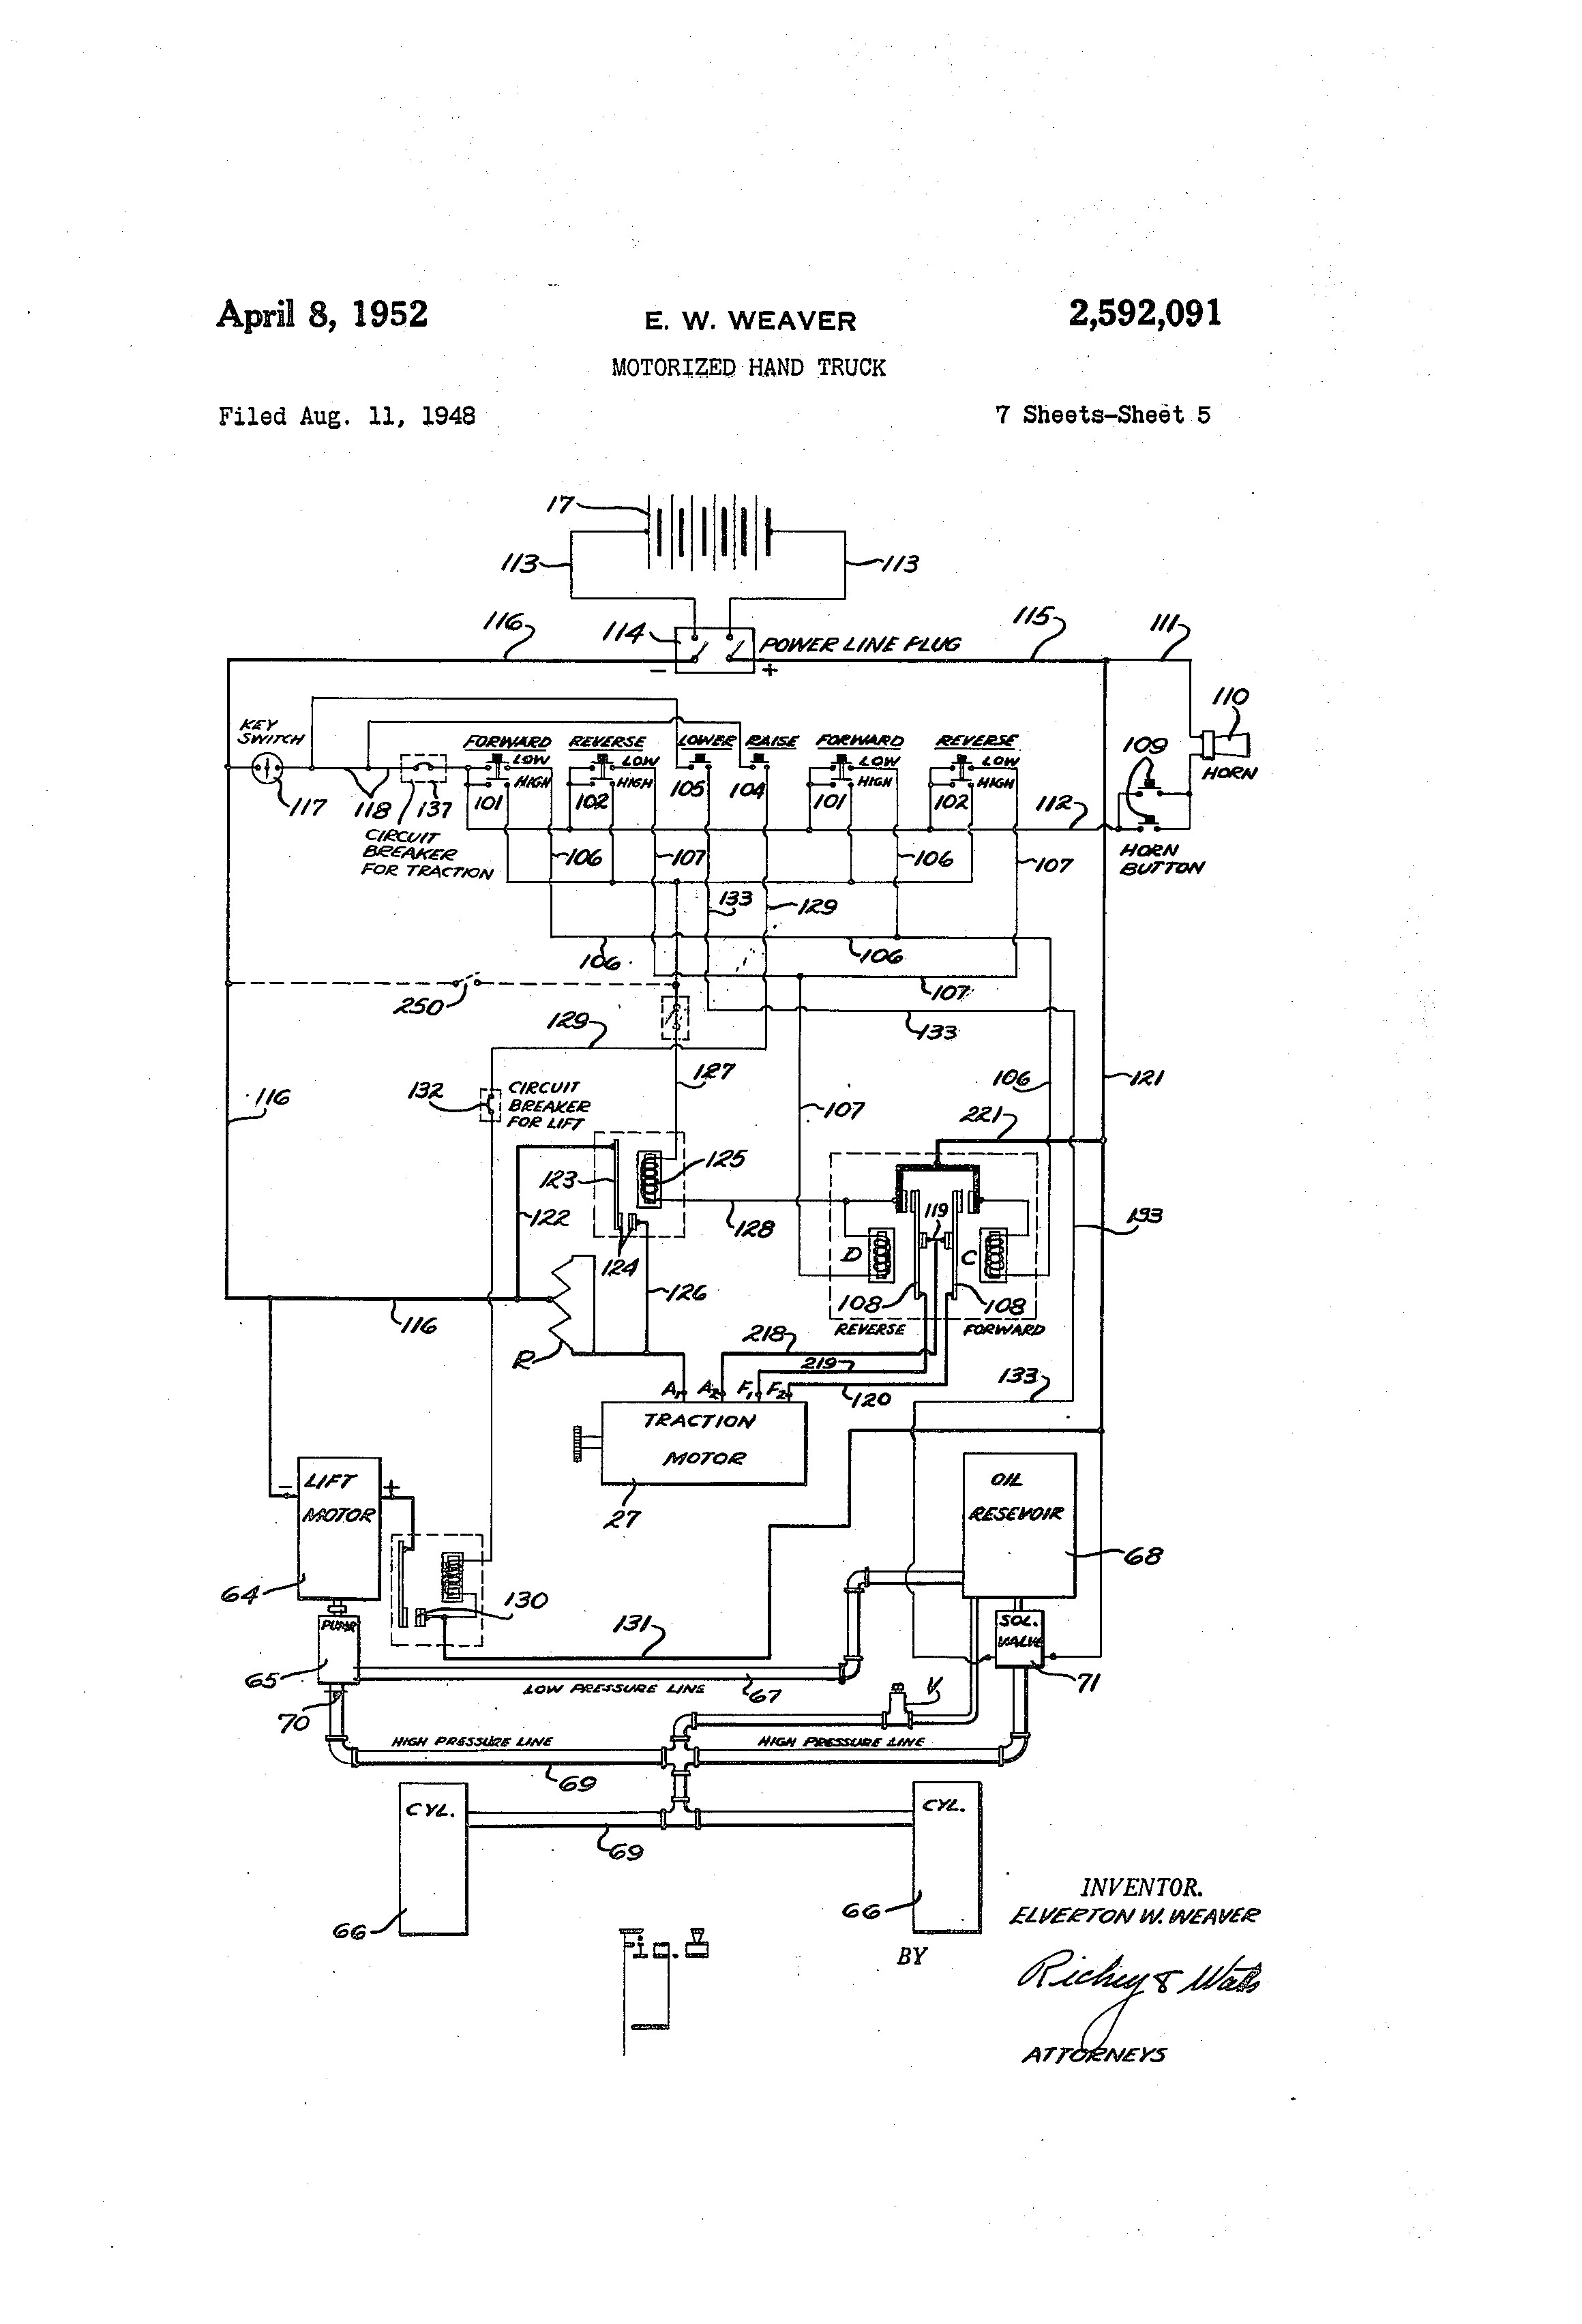 crown forklift wiring diagram seat fc50 schematic wiring diagram u2022 rh freewiring today Clark Forklift Wiring Diagram Clark Forklift Wiring Diagram